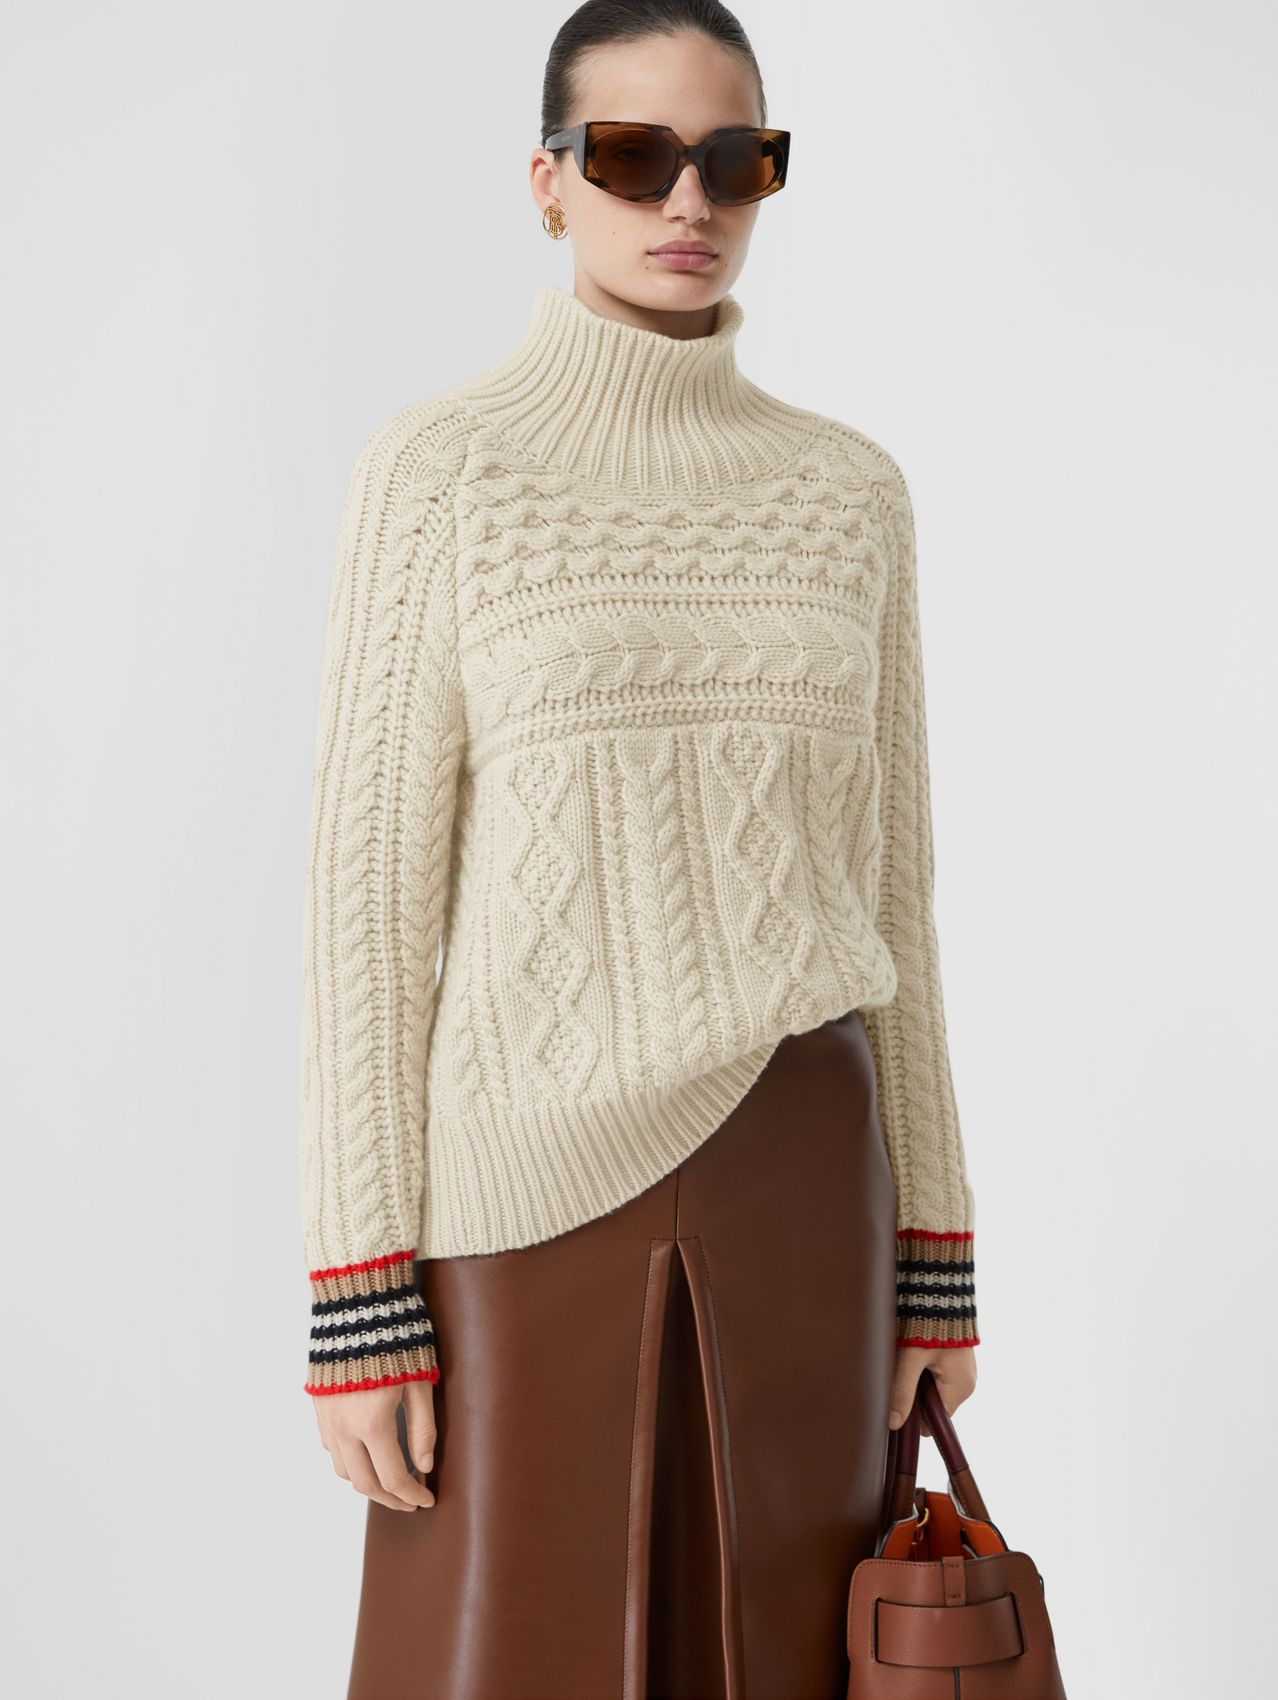 Icon Stripe Cuff Cable Knit Cashmere Sweater in Natural White